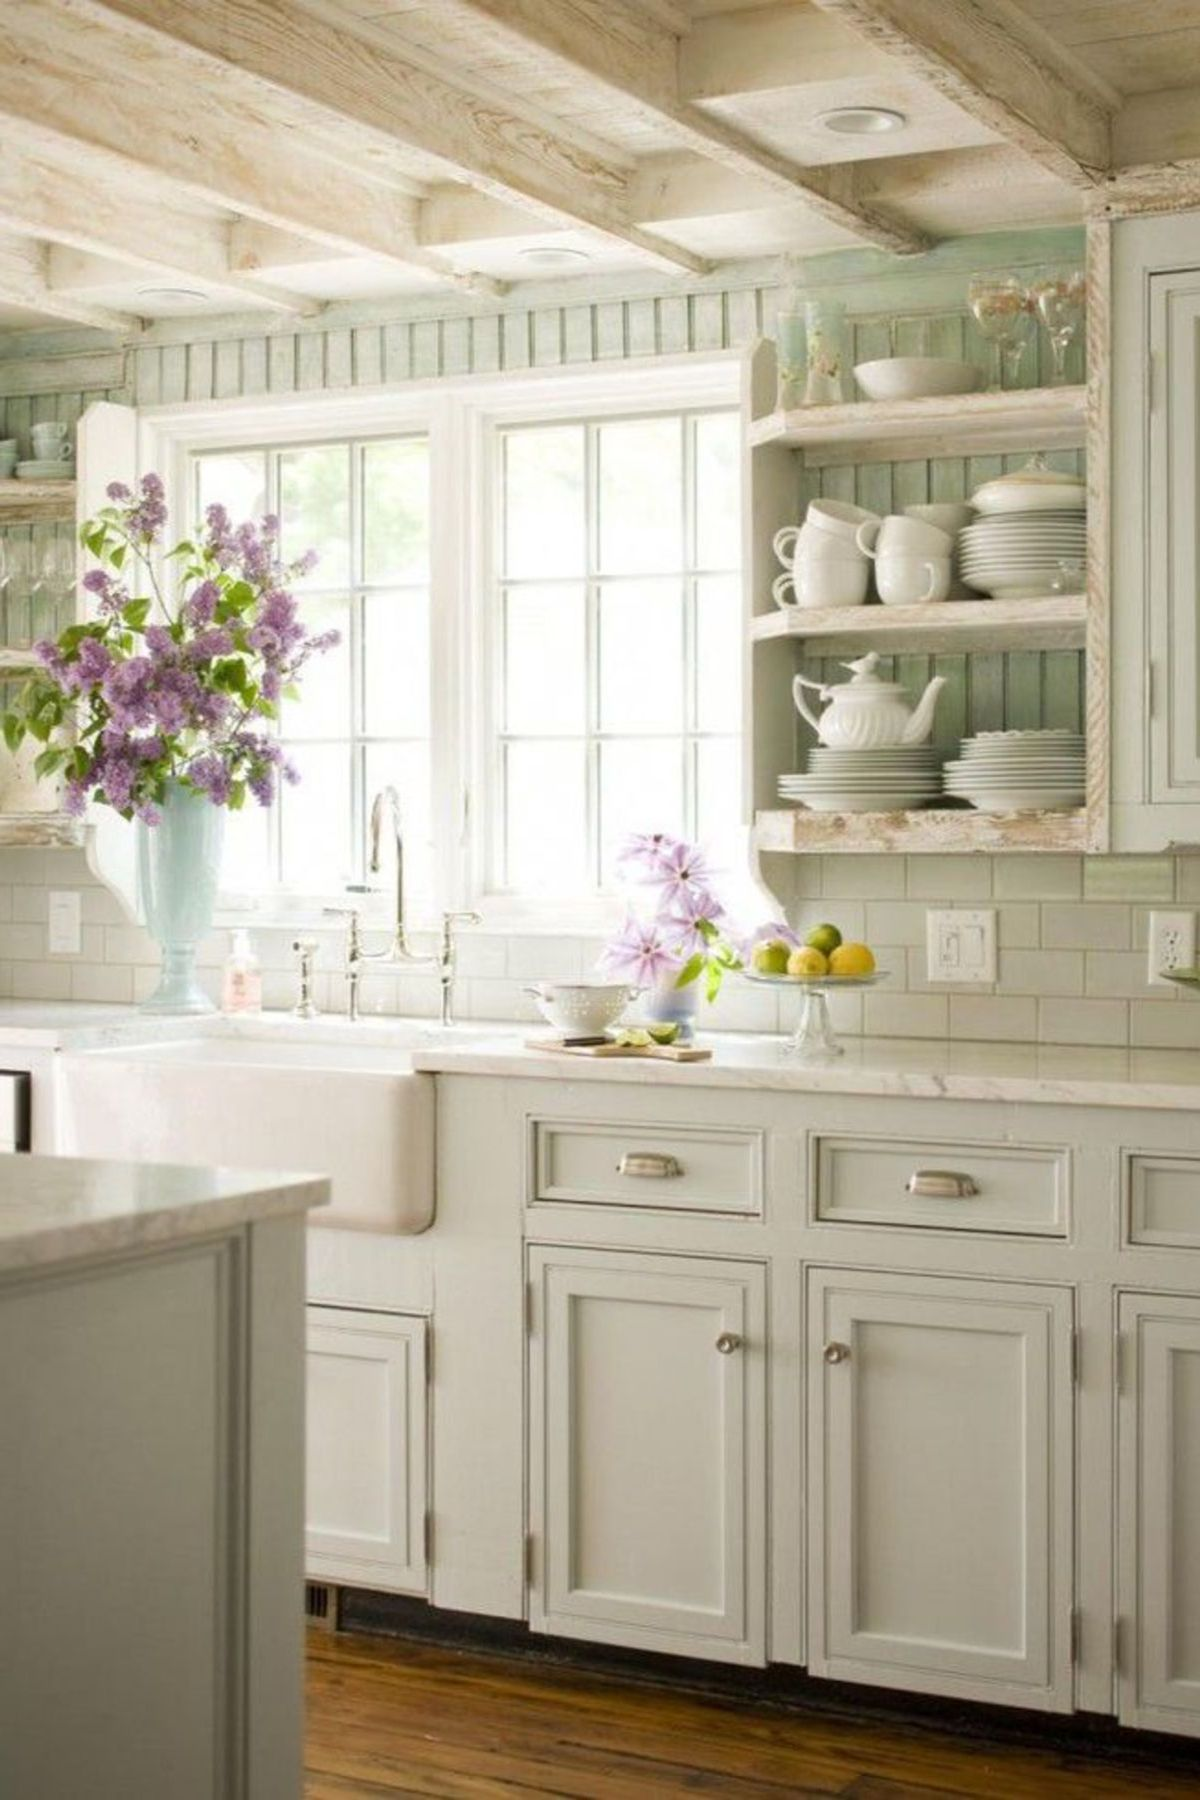 Farmhouse kitchen ideas on a budget farmhouse country - Kitchen decorating ideas on a budget ...